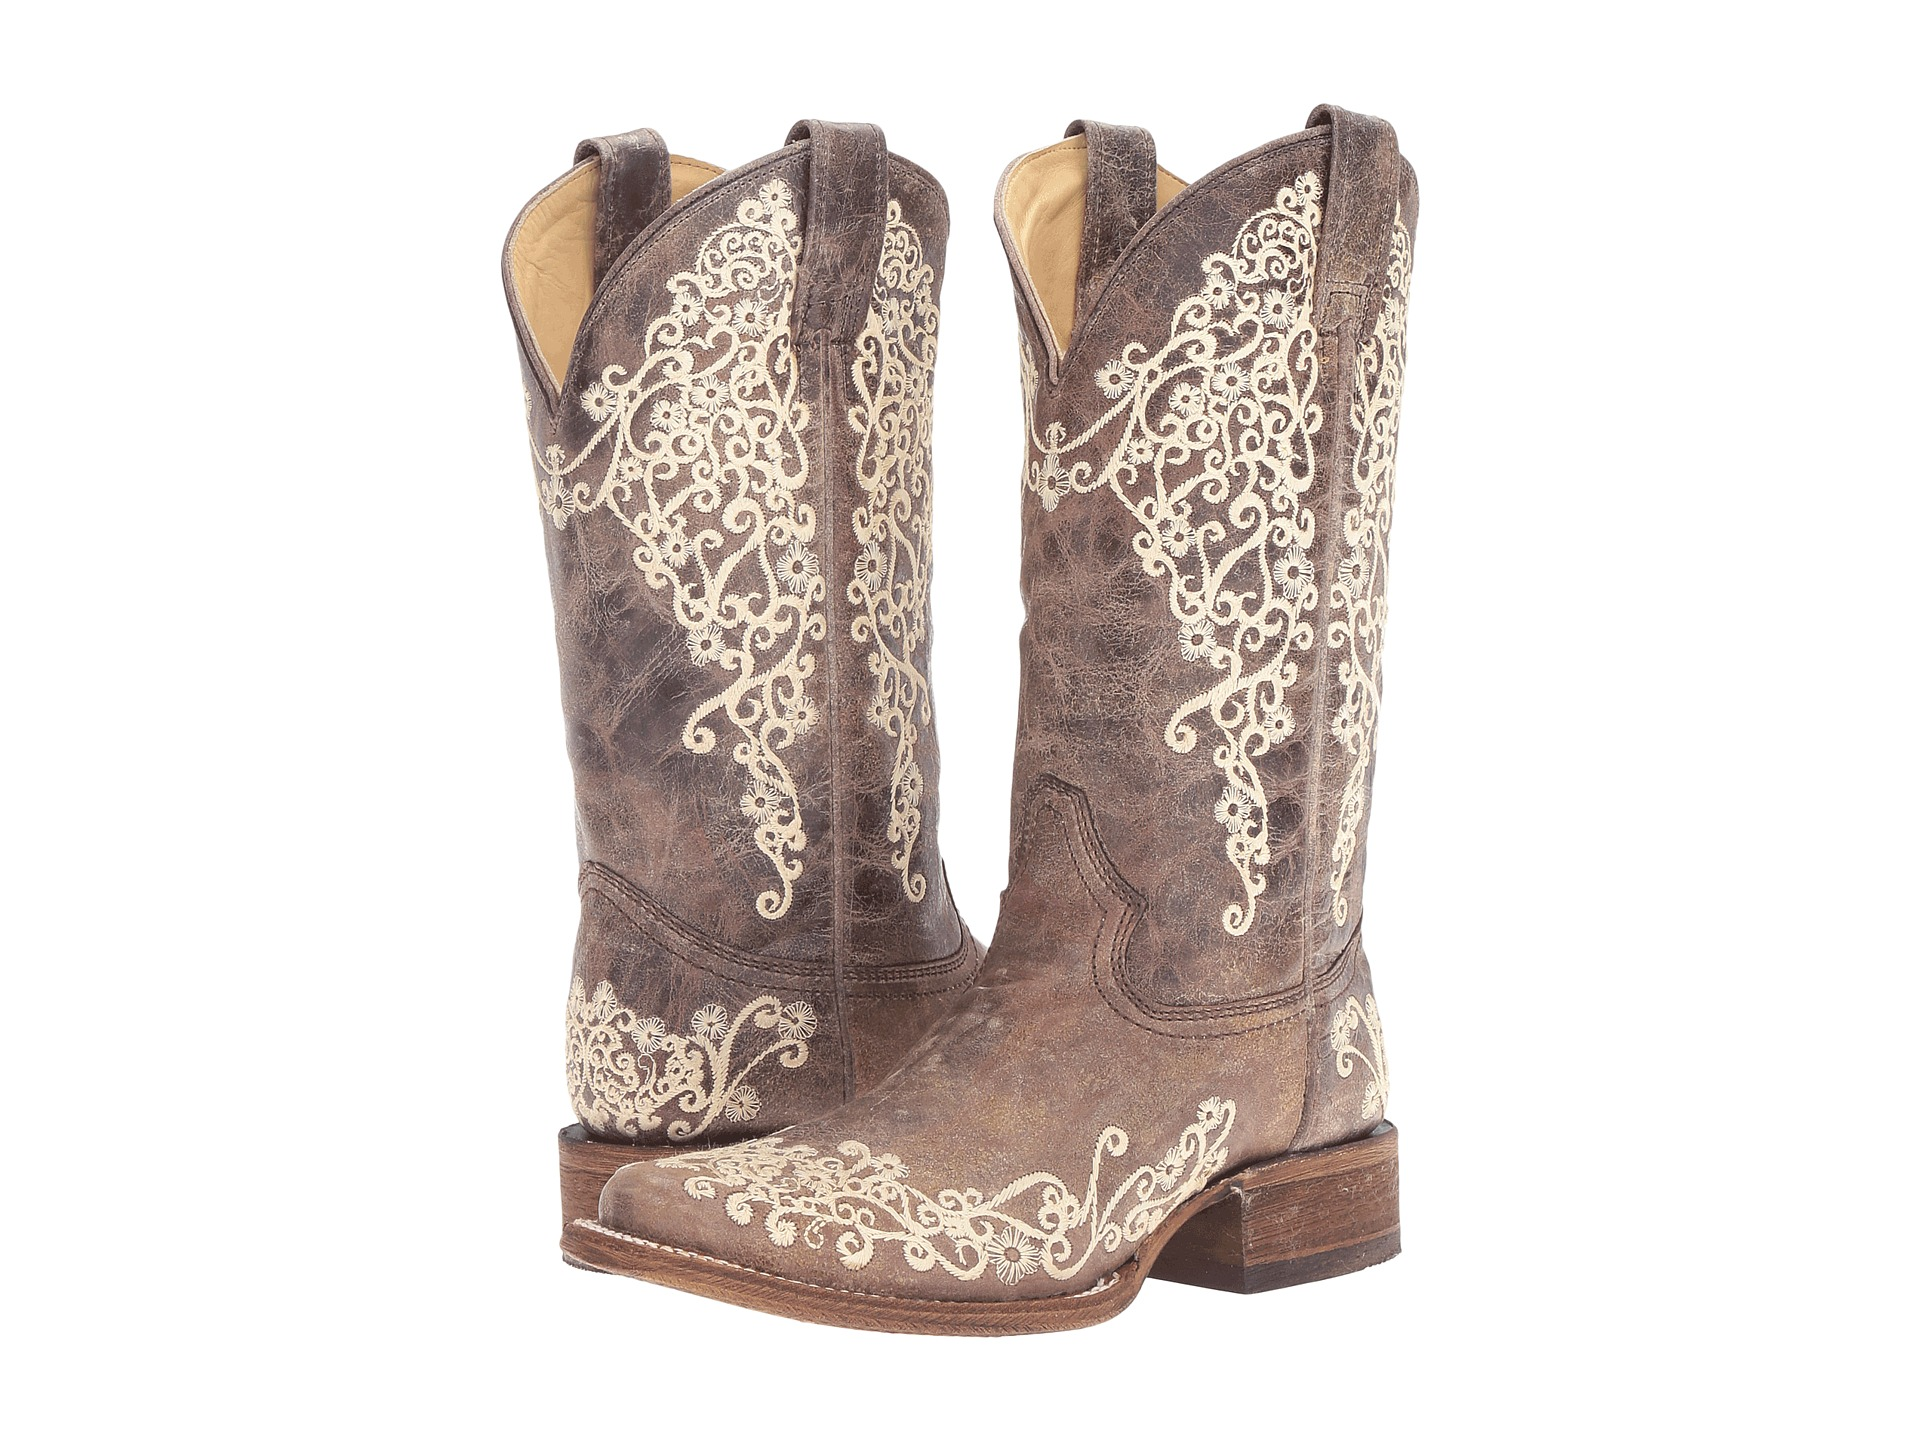 CK XARCzxPiAgQHAgEH wedding cowboy boots View More Like This Corral Boots A